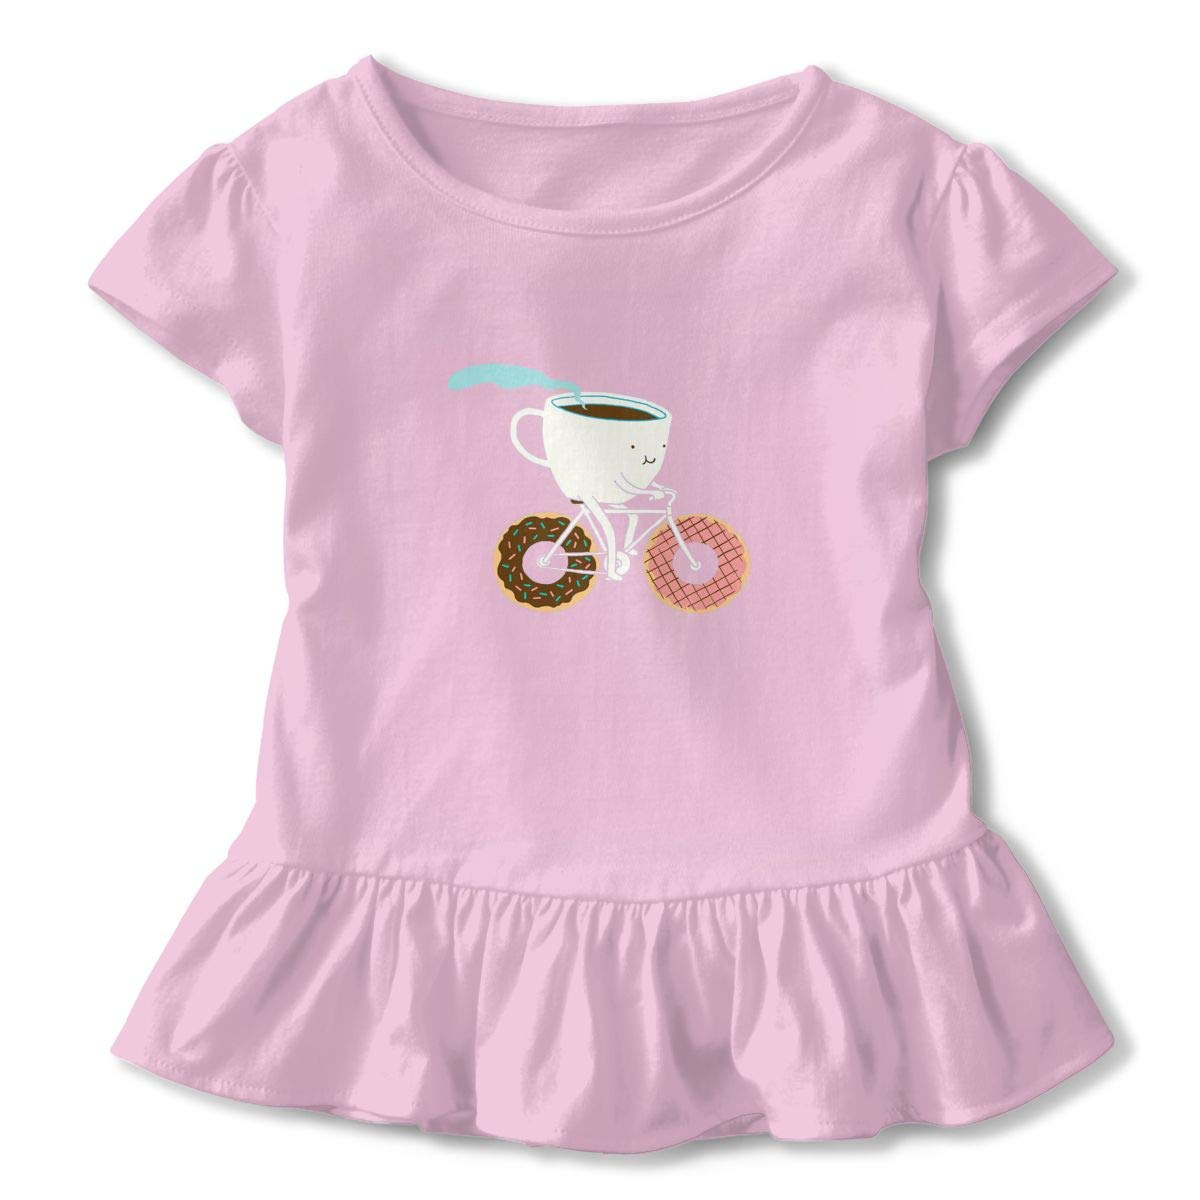 Coffee Riding Donuts Breathable Sweat-Absorbing Cotton Tee T-Shirts Shirts with Round Neck and Ruffles Casual Top for Toddlers Baby Girls Children